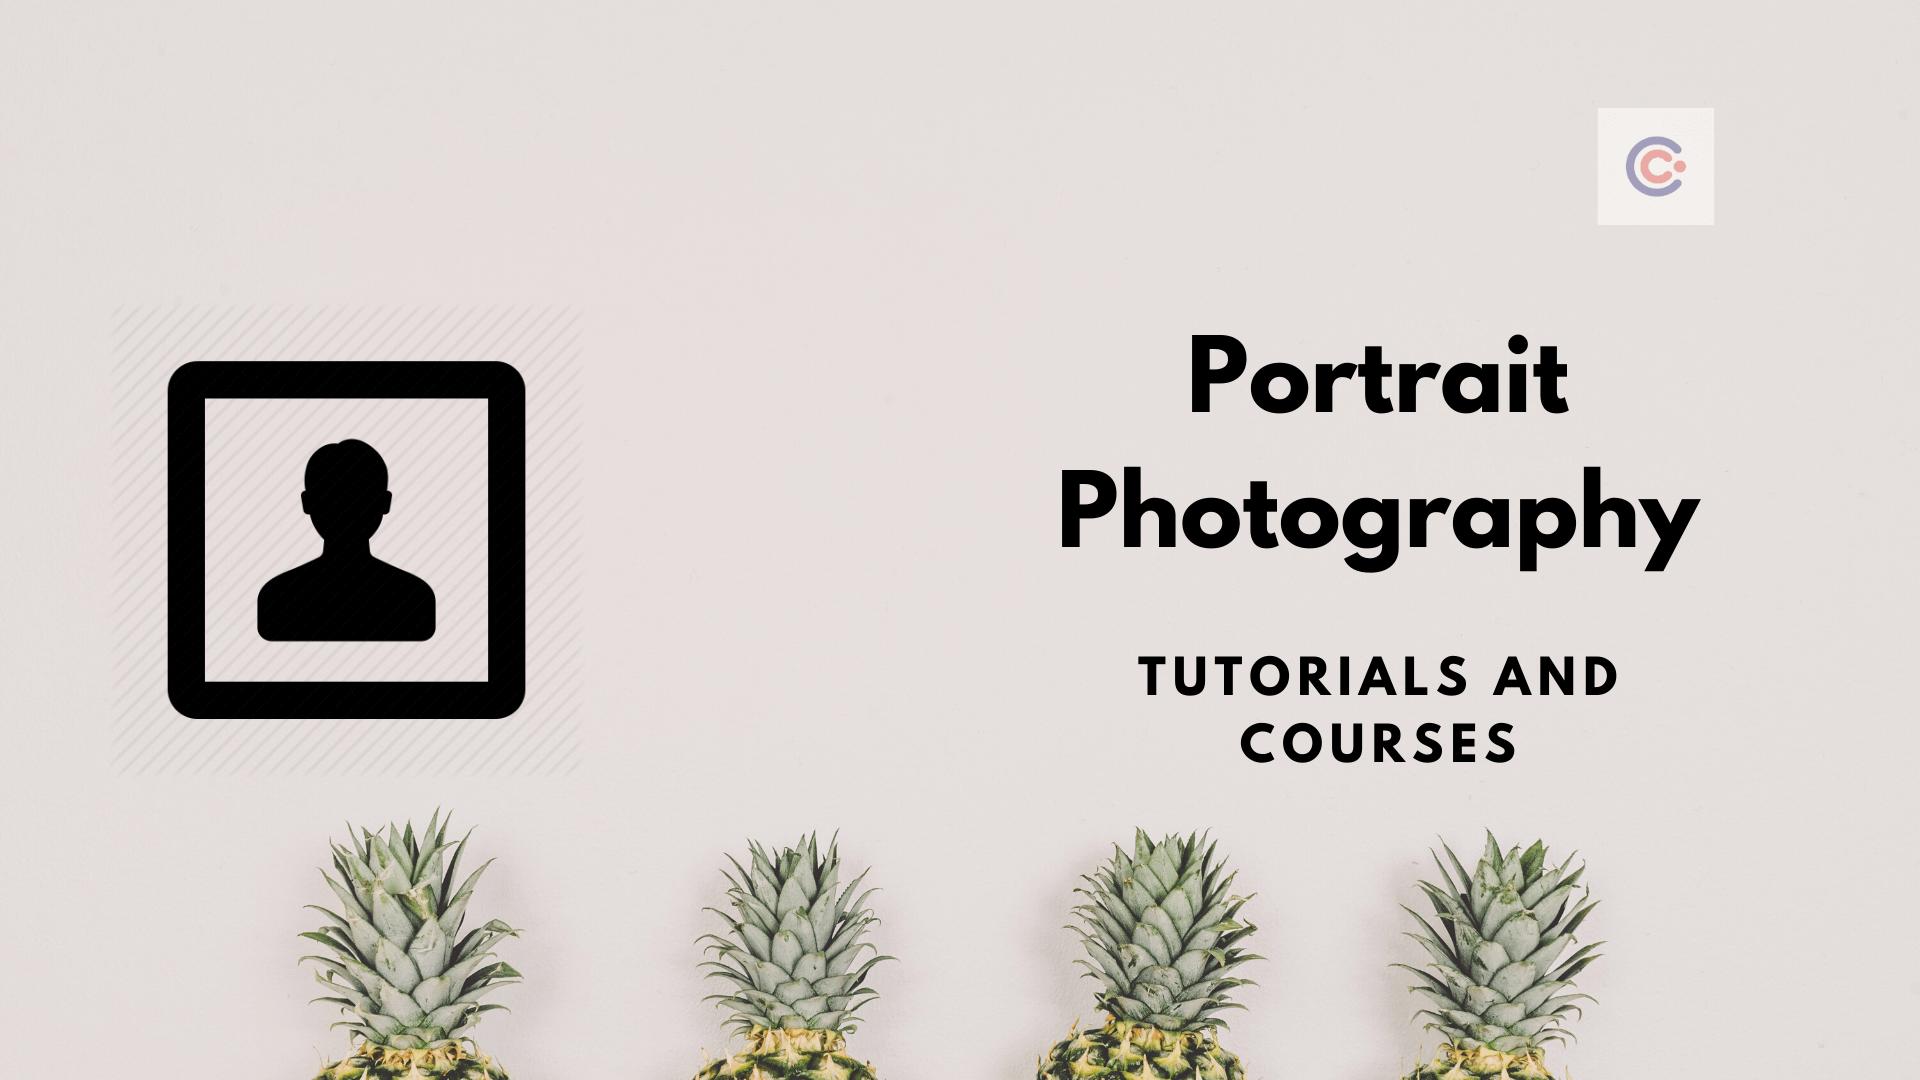 8 Best Portrait Photography Classes and Tutorials - Learn Portrait Photography Online